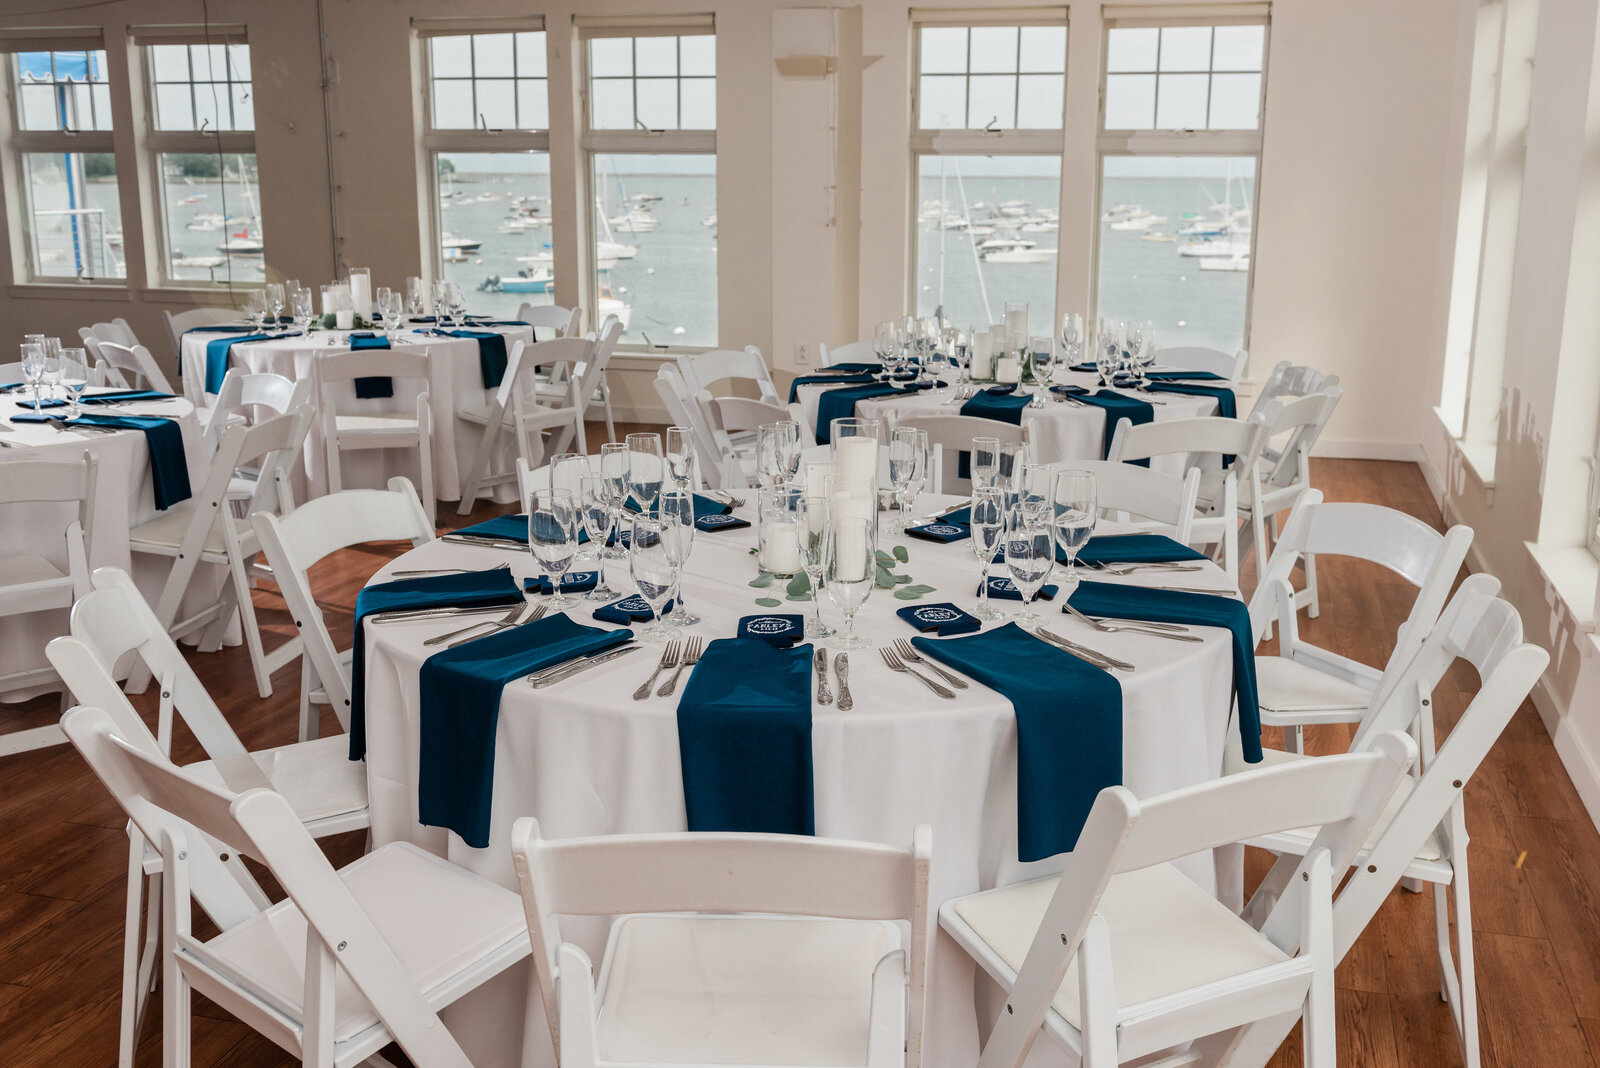 nautical reception decor at Duxbury Bay Maritime School wedding